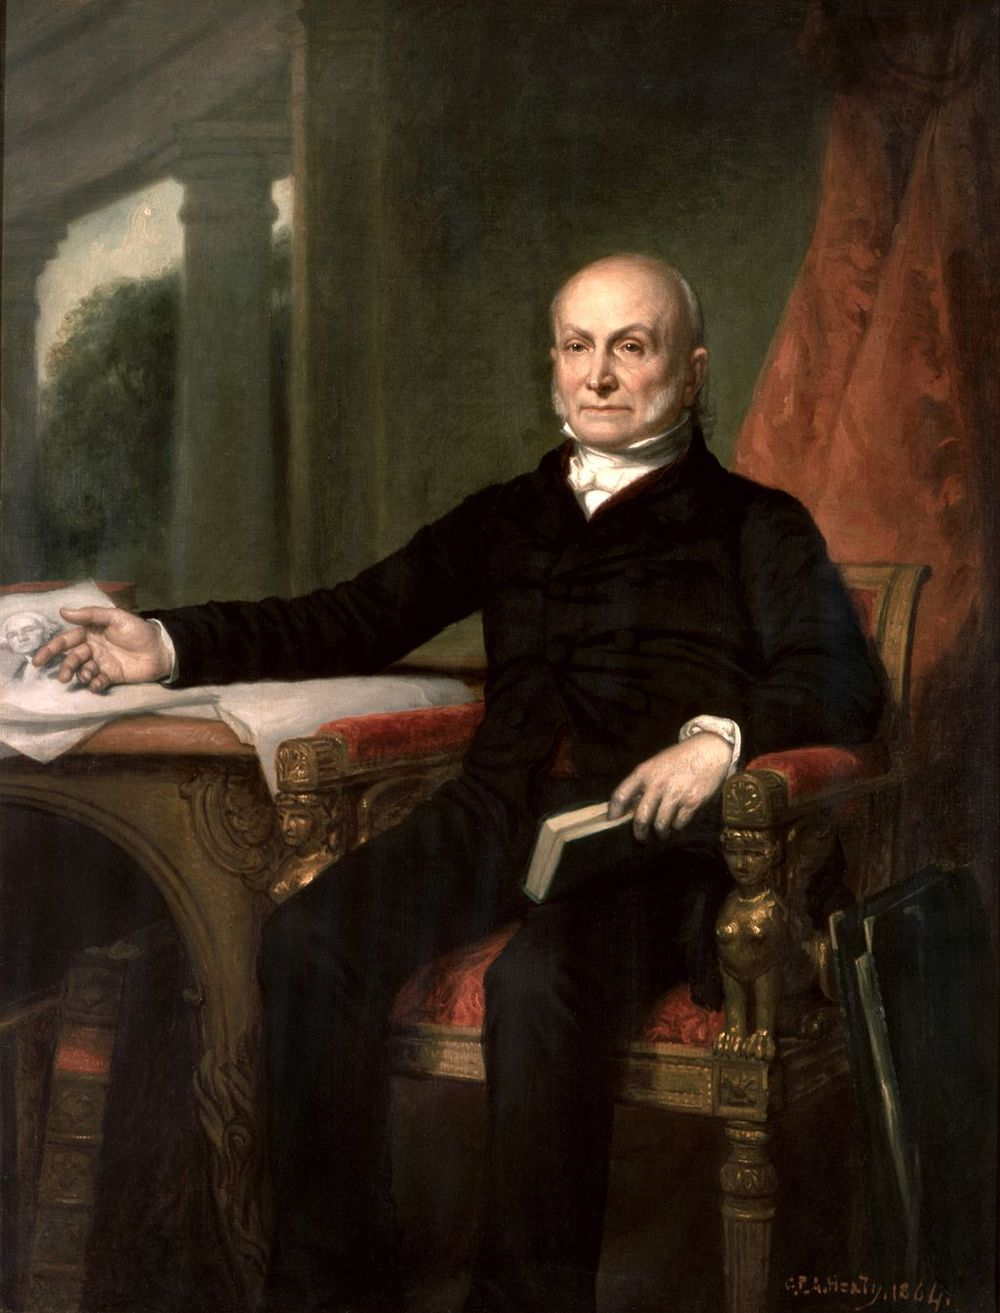 John Quincy Adams, 1858. Painting by G.P.A. Healy.